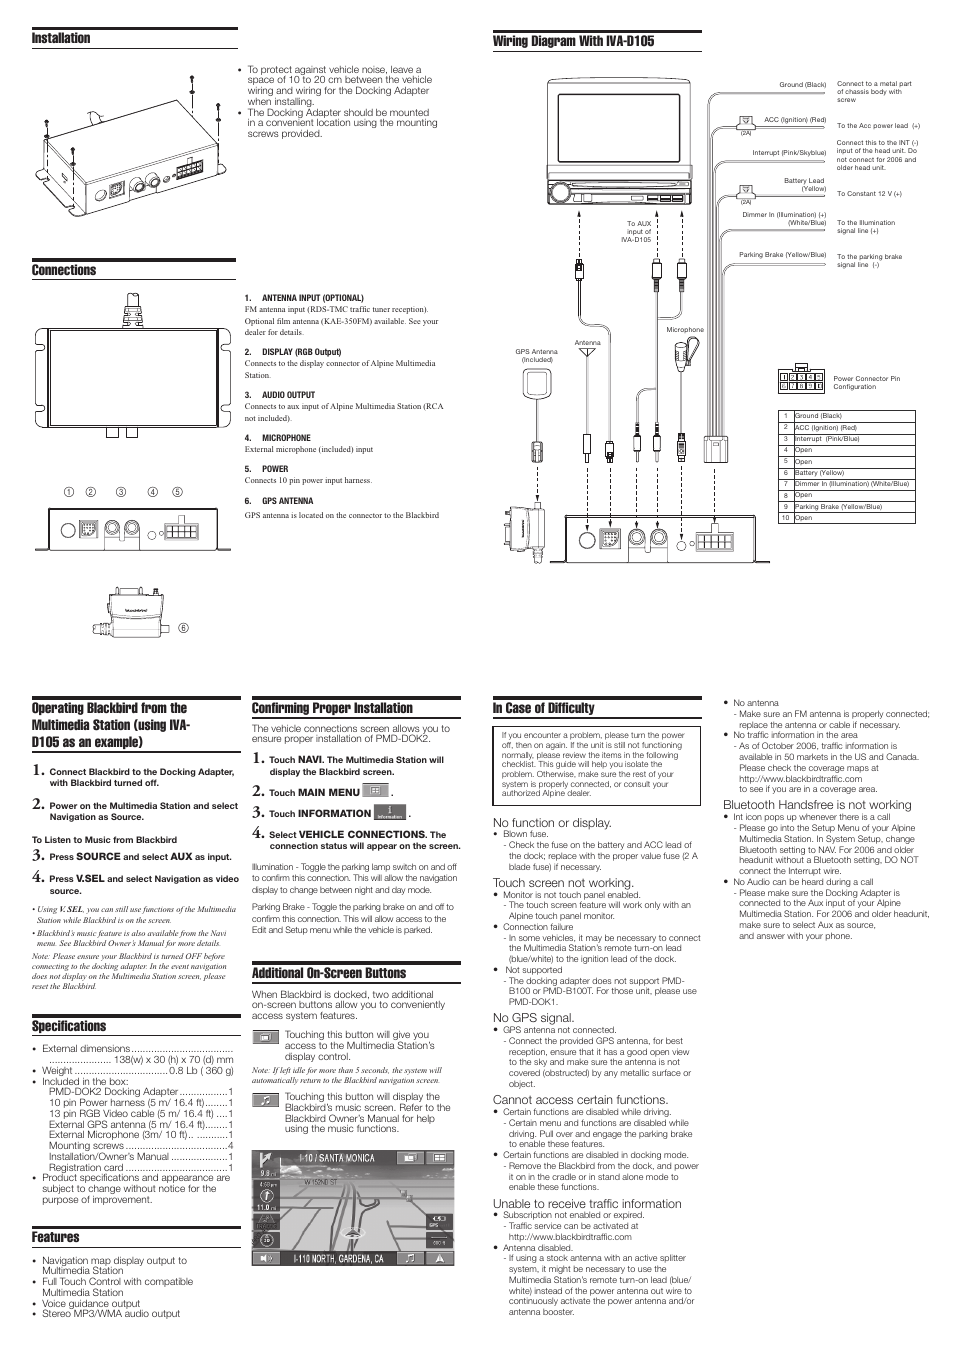 hight resolution of connections wiring diagram with iva d105 specifications alpine blackbird docking adapter pmd dok2 user manual page 2 2